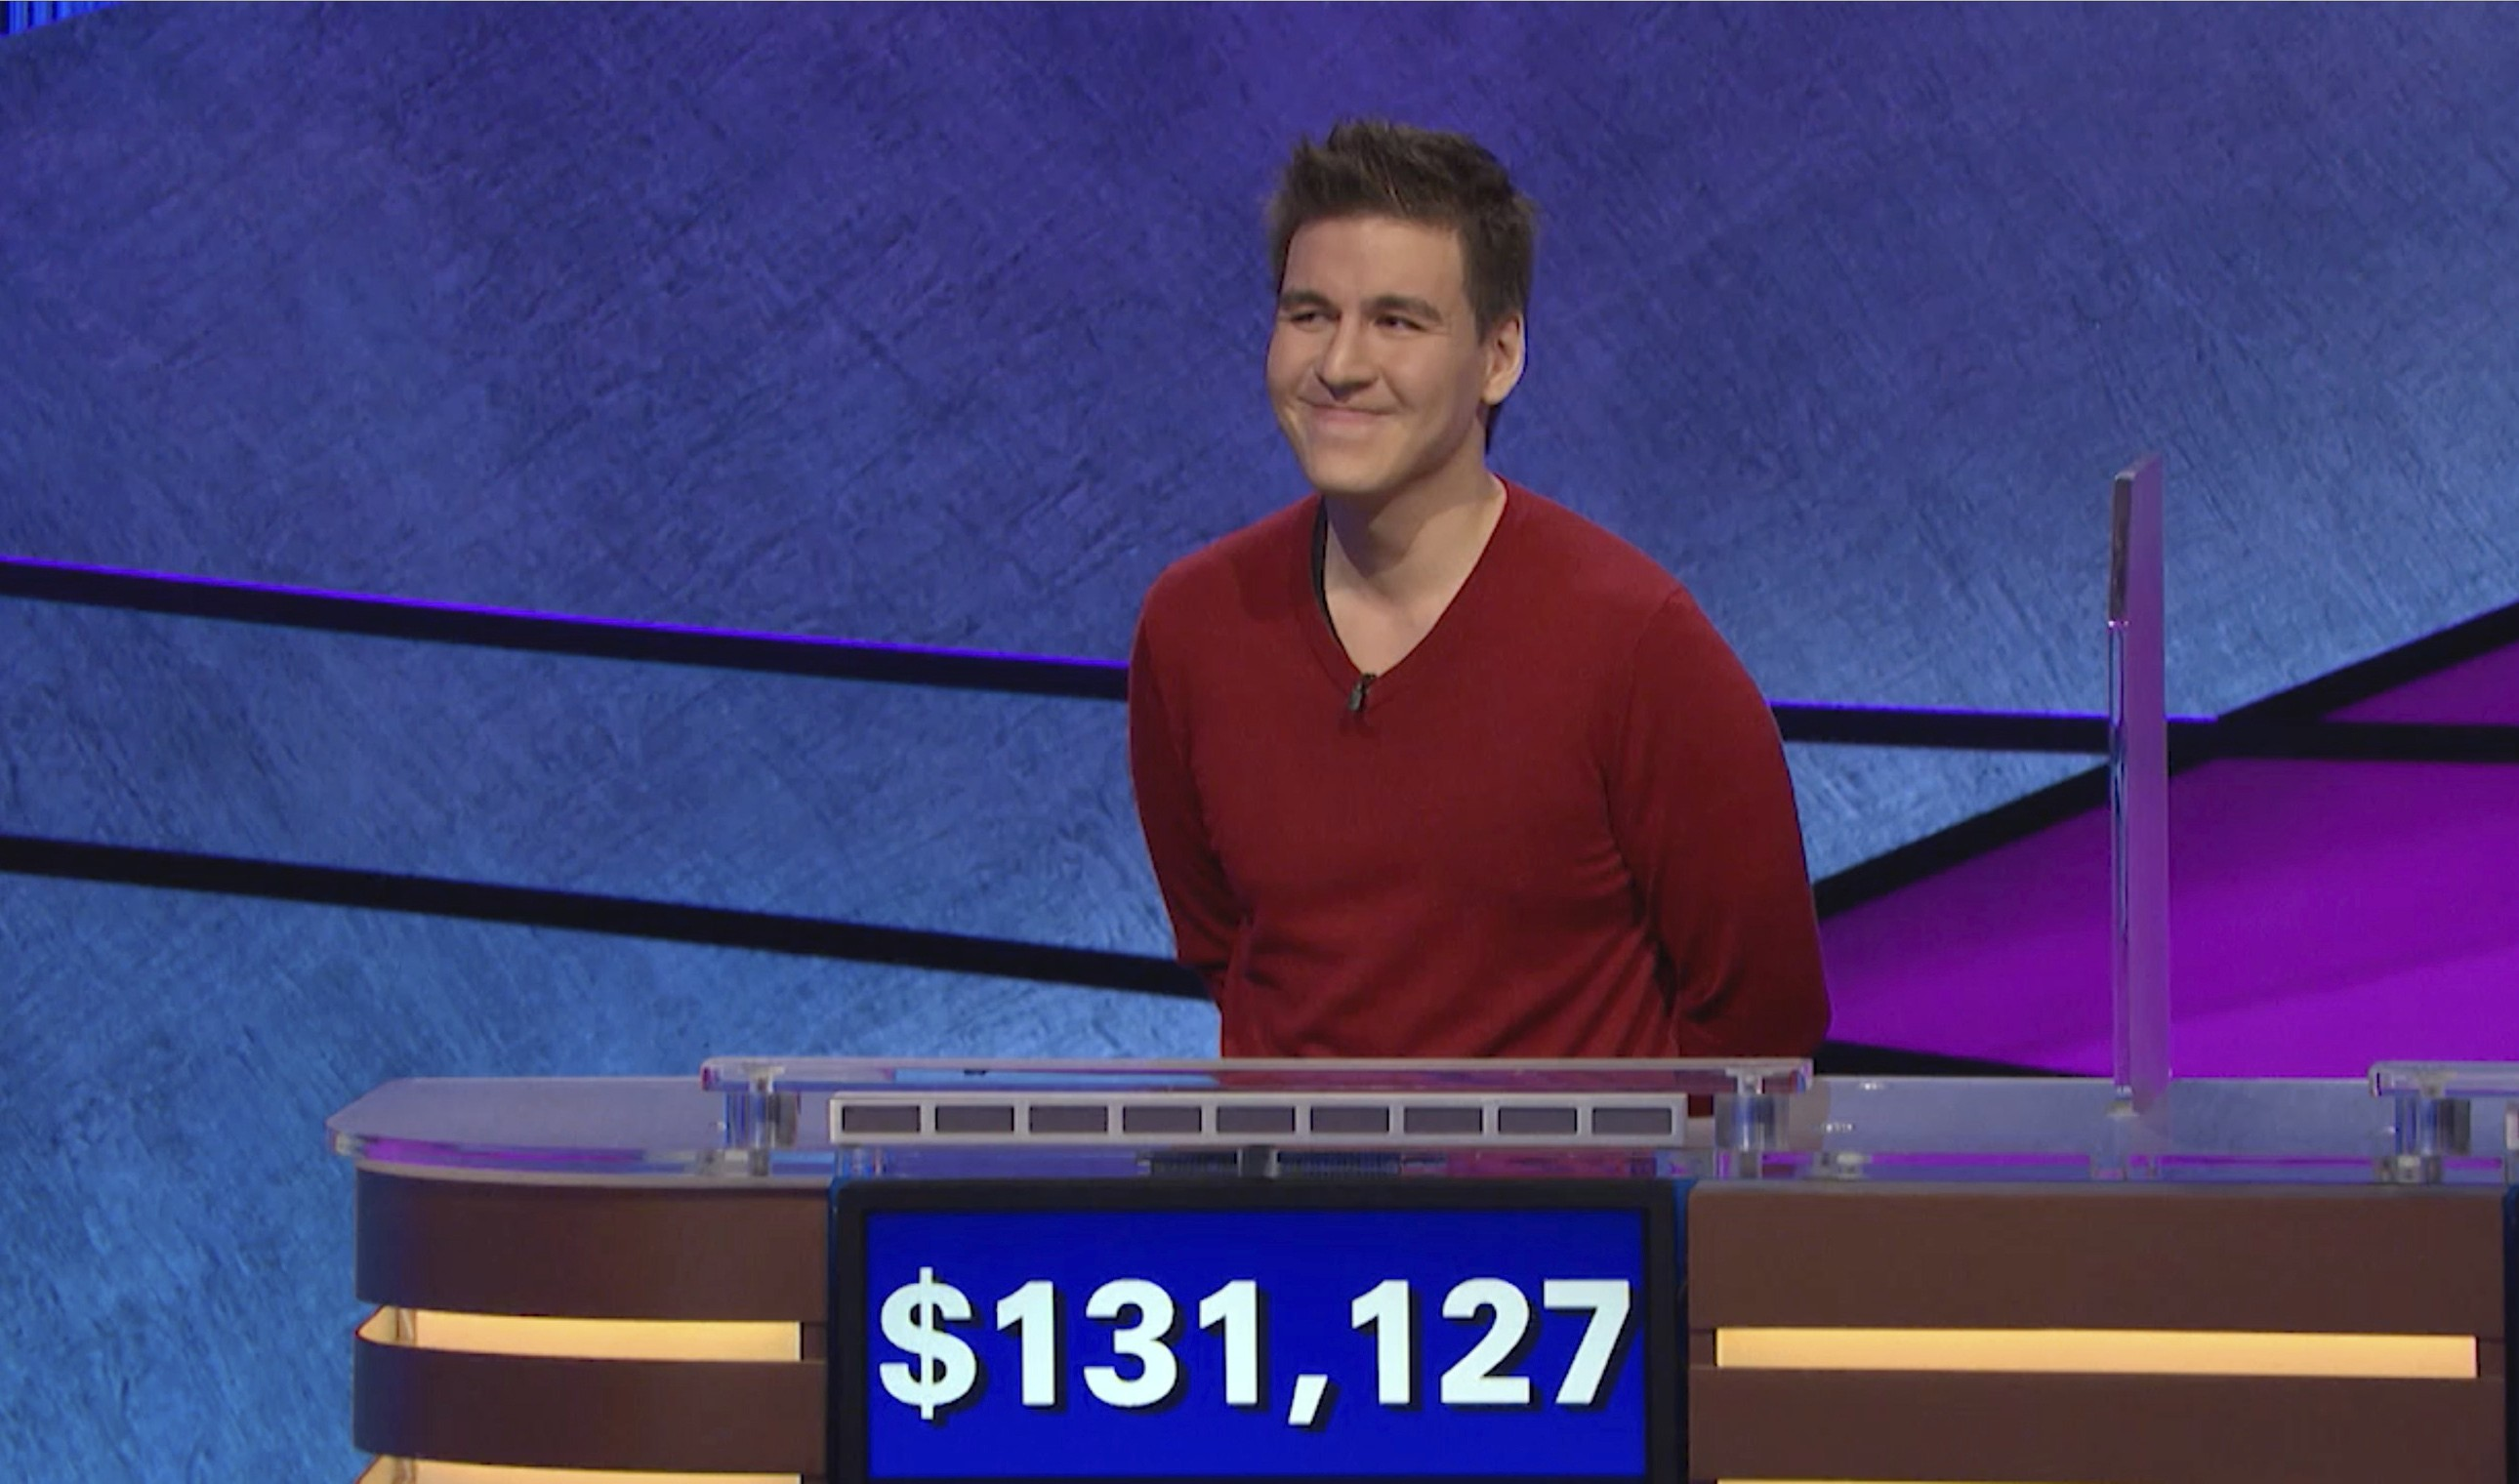 """James Holzhauer though fails to beat Ken Jennings record, still won in building many of his own on the show """"Jeopardy!"""""""